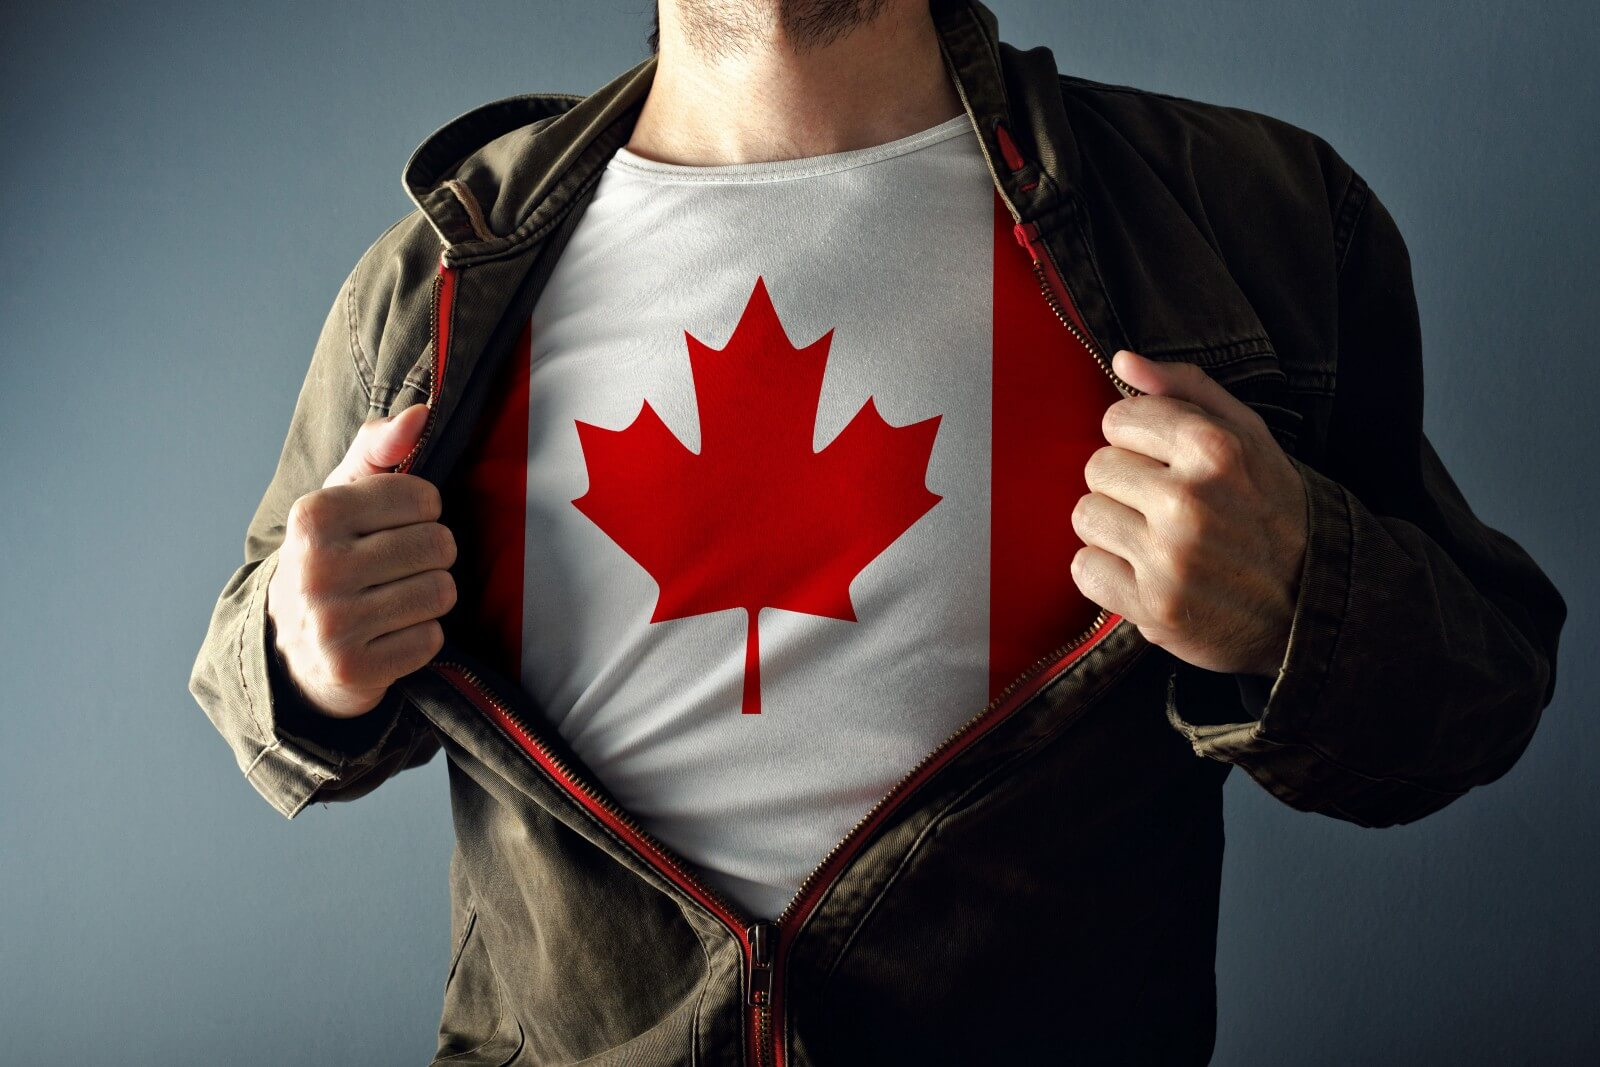 Man wearing dark leather zippered jacket partially opened to reveal a Canadian flag t-shirt